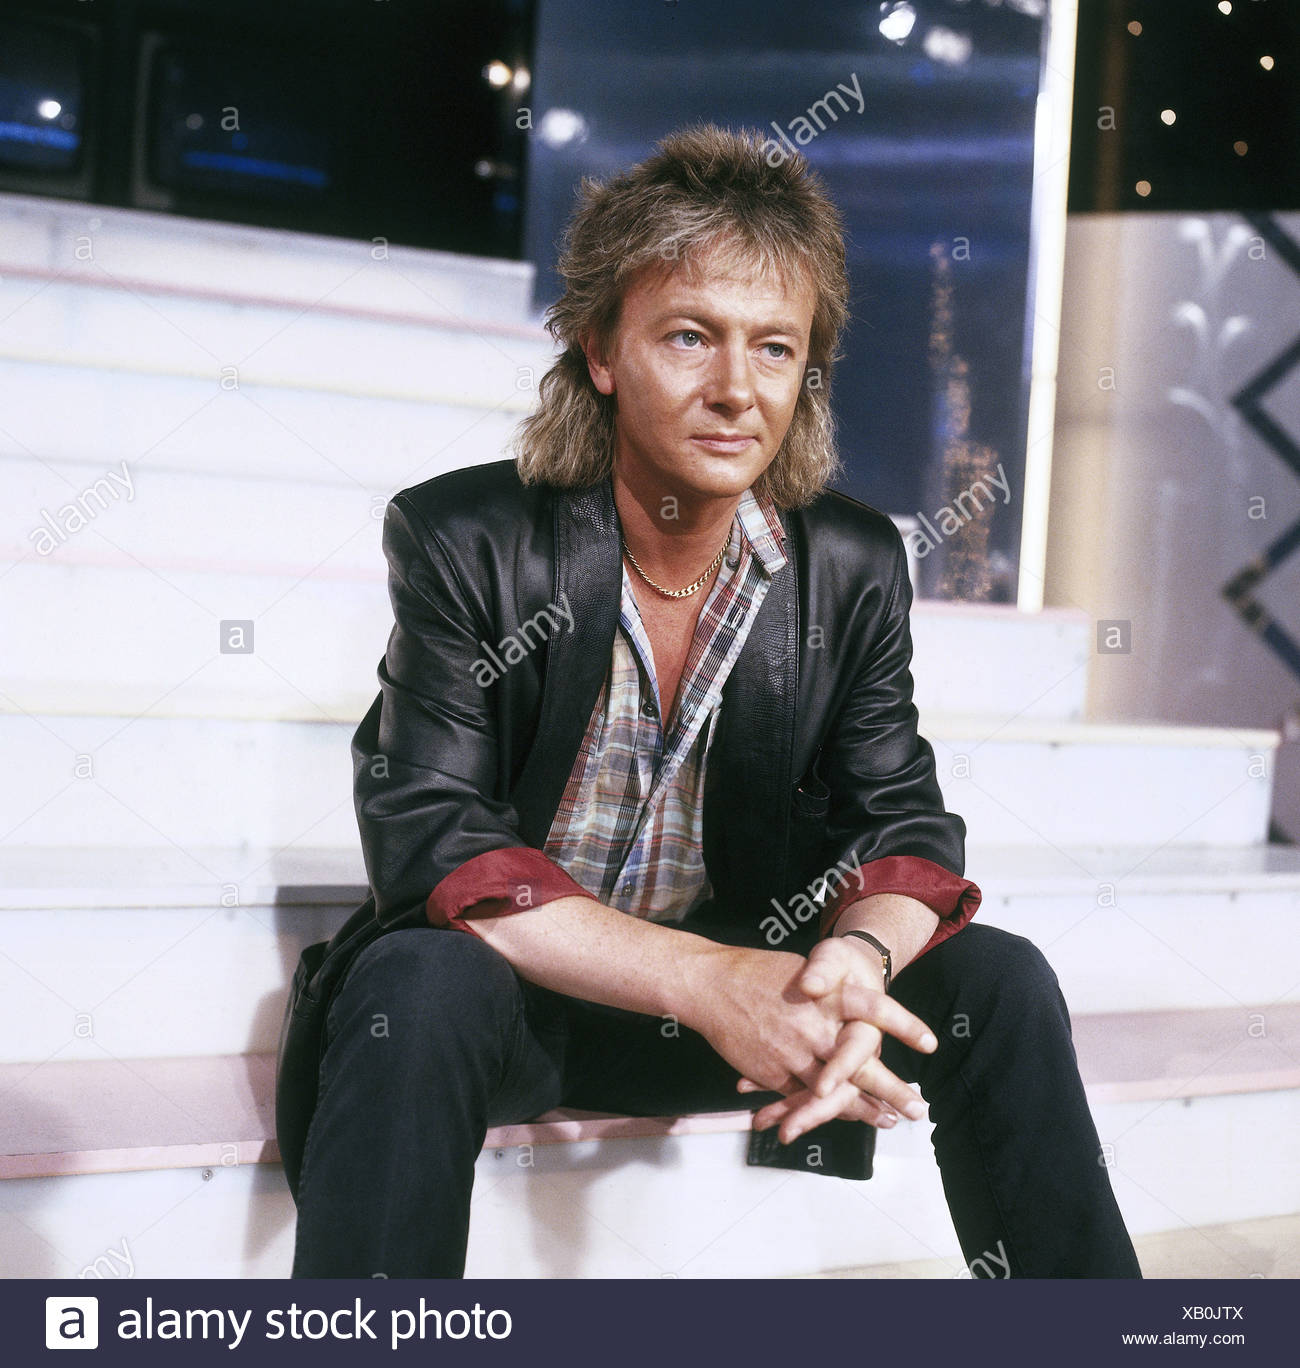 Mullet Haircut Stock Photos Mullet Haircut Stock Images Alamy